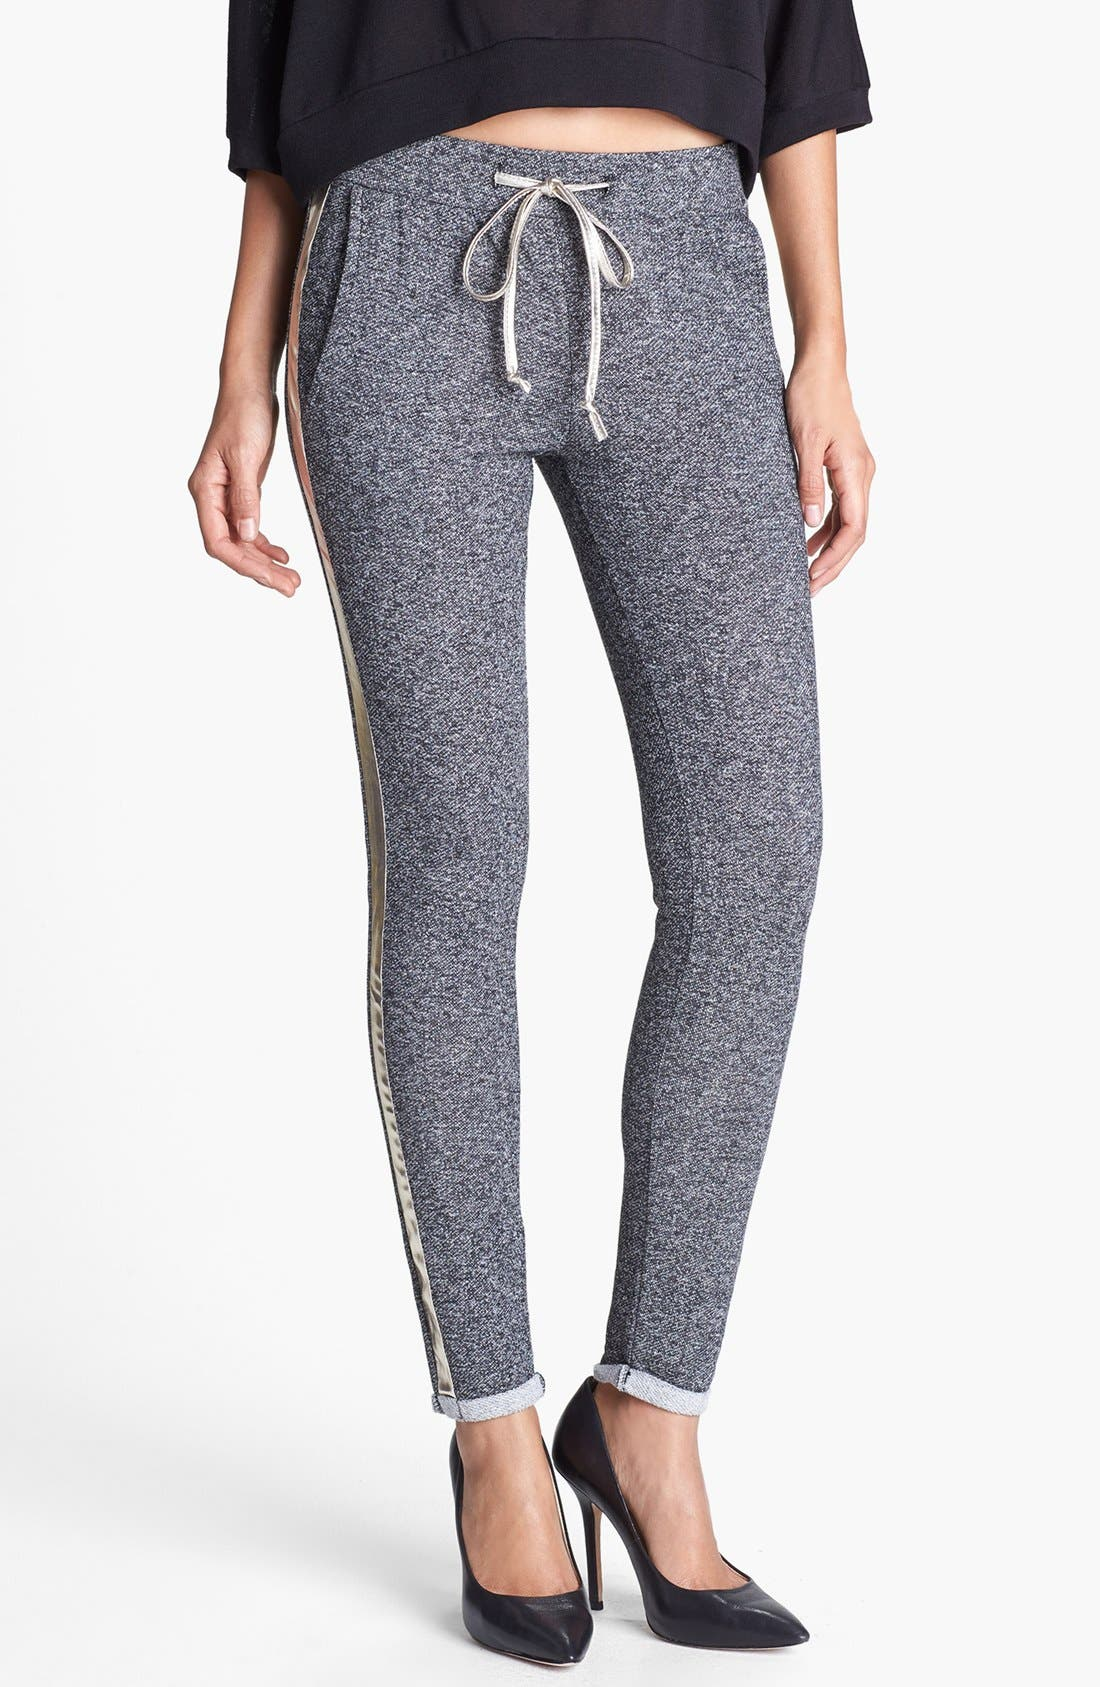 Main Image - Faubourg du Temple Faux Leather Trim Tapered Track Pants